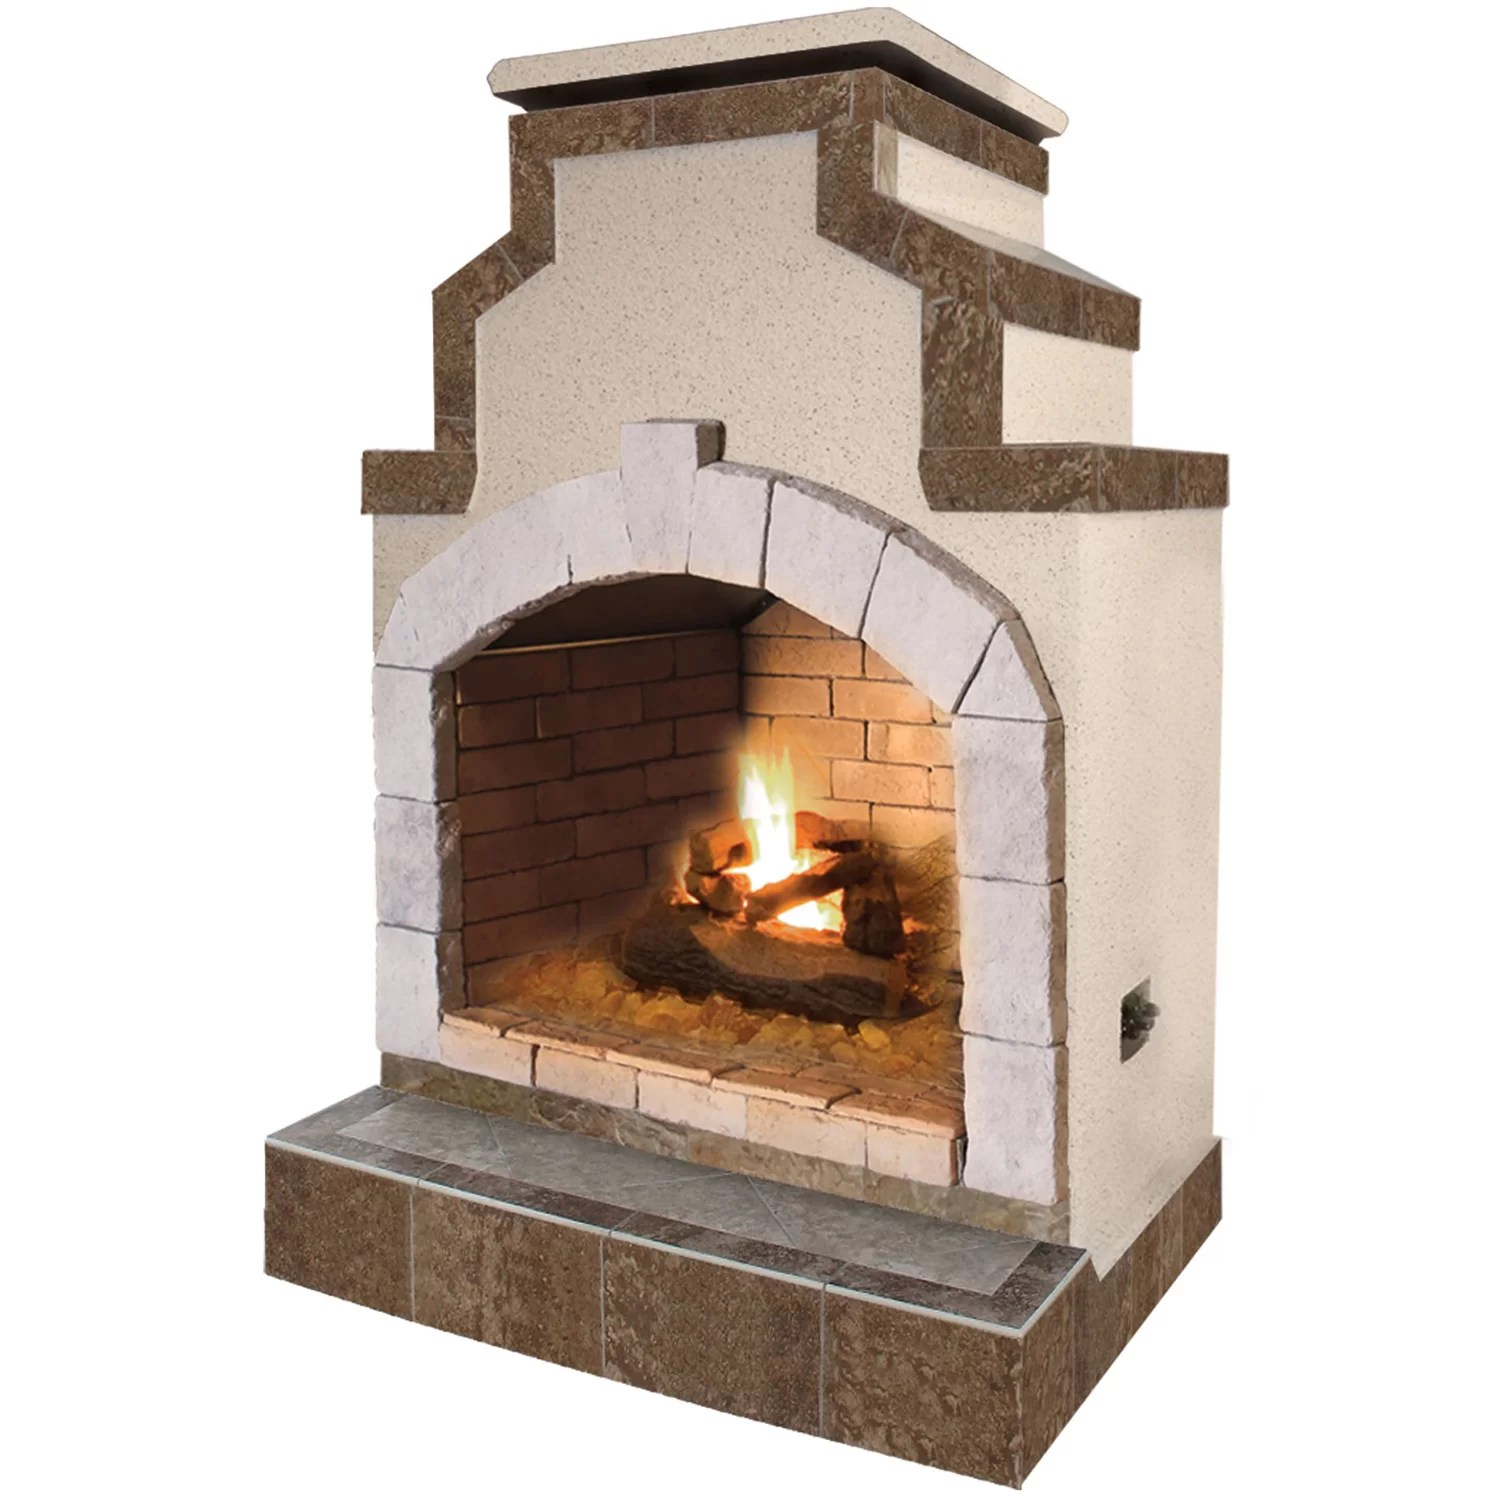 Calflame Propane Gas Outdoor Fireplace Amp Reviews